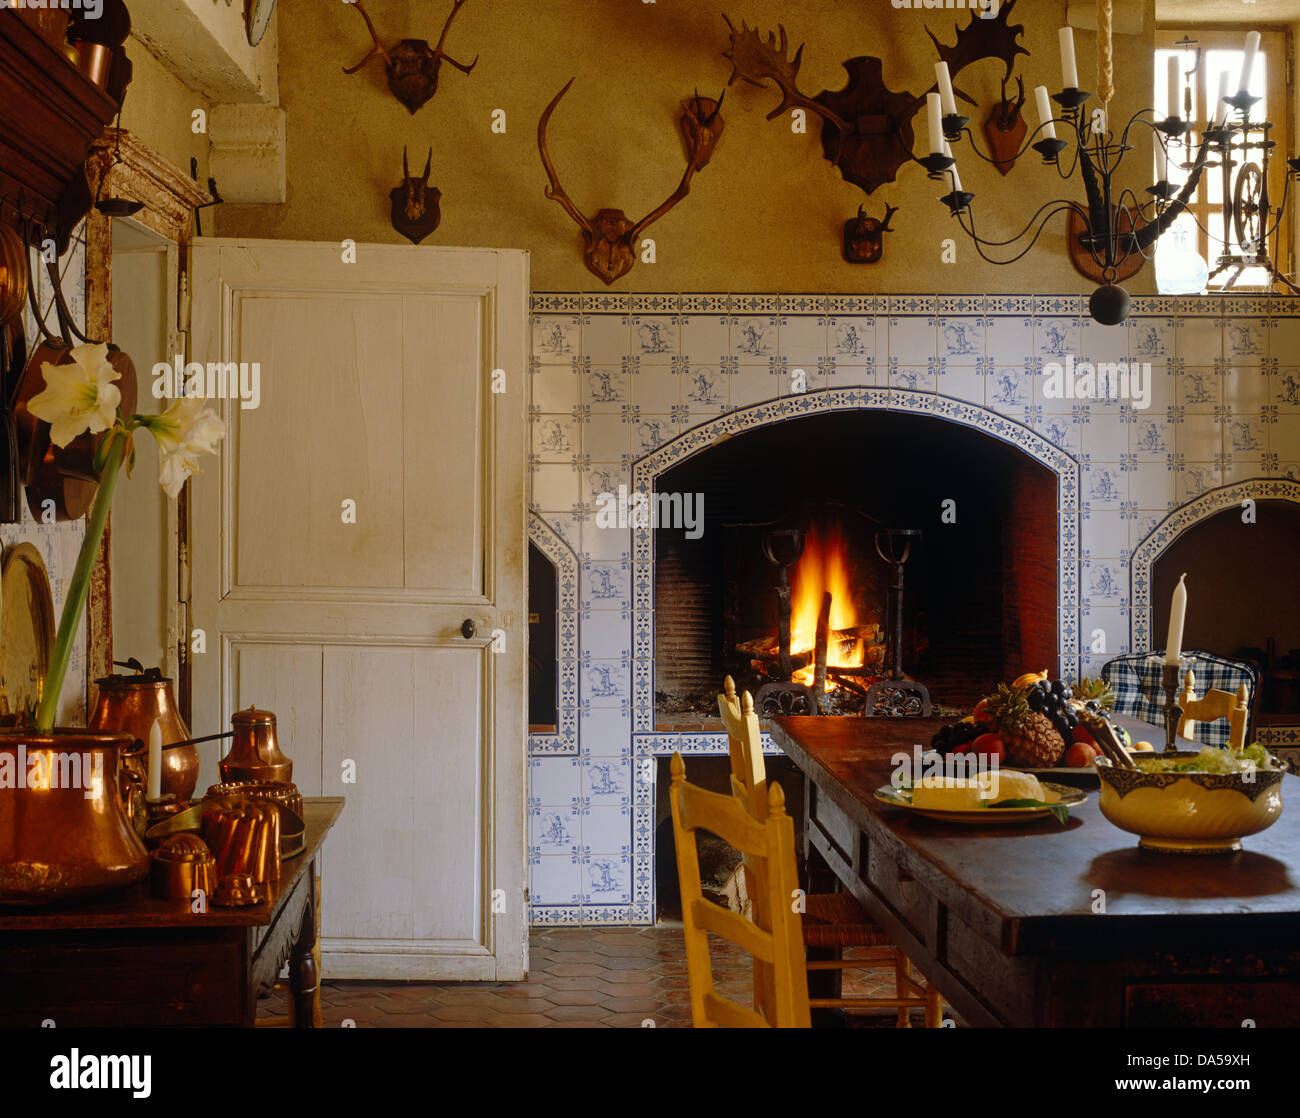 Wooden Table And Chairs In French Country Kitchen With Display Of Antlers  Above Open Fire In Recess In Blue+white Tiled Wall